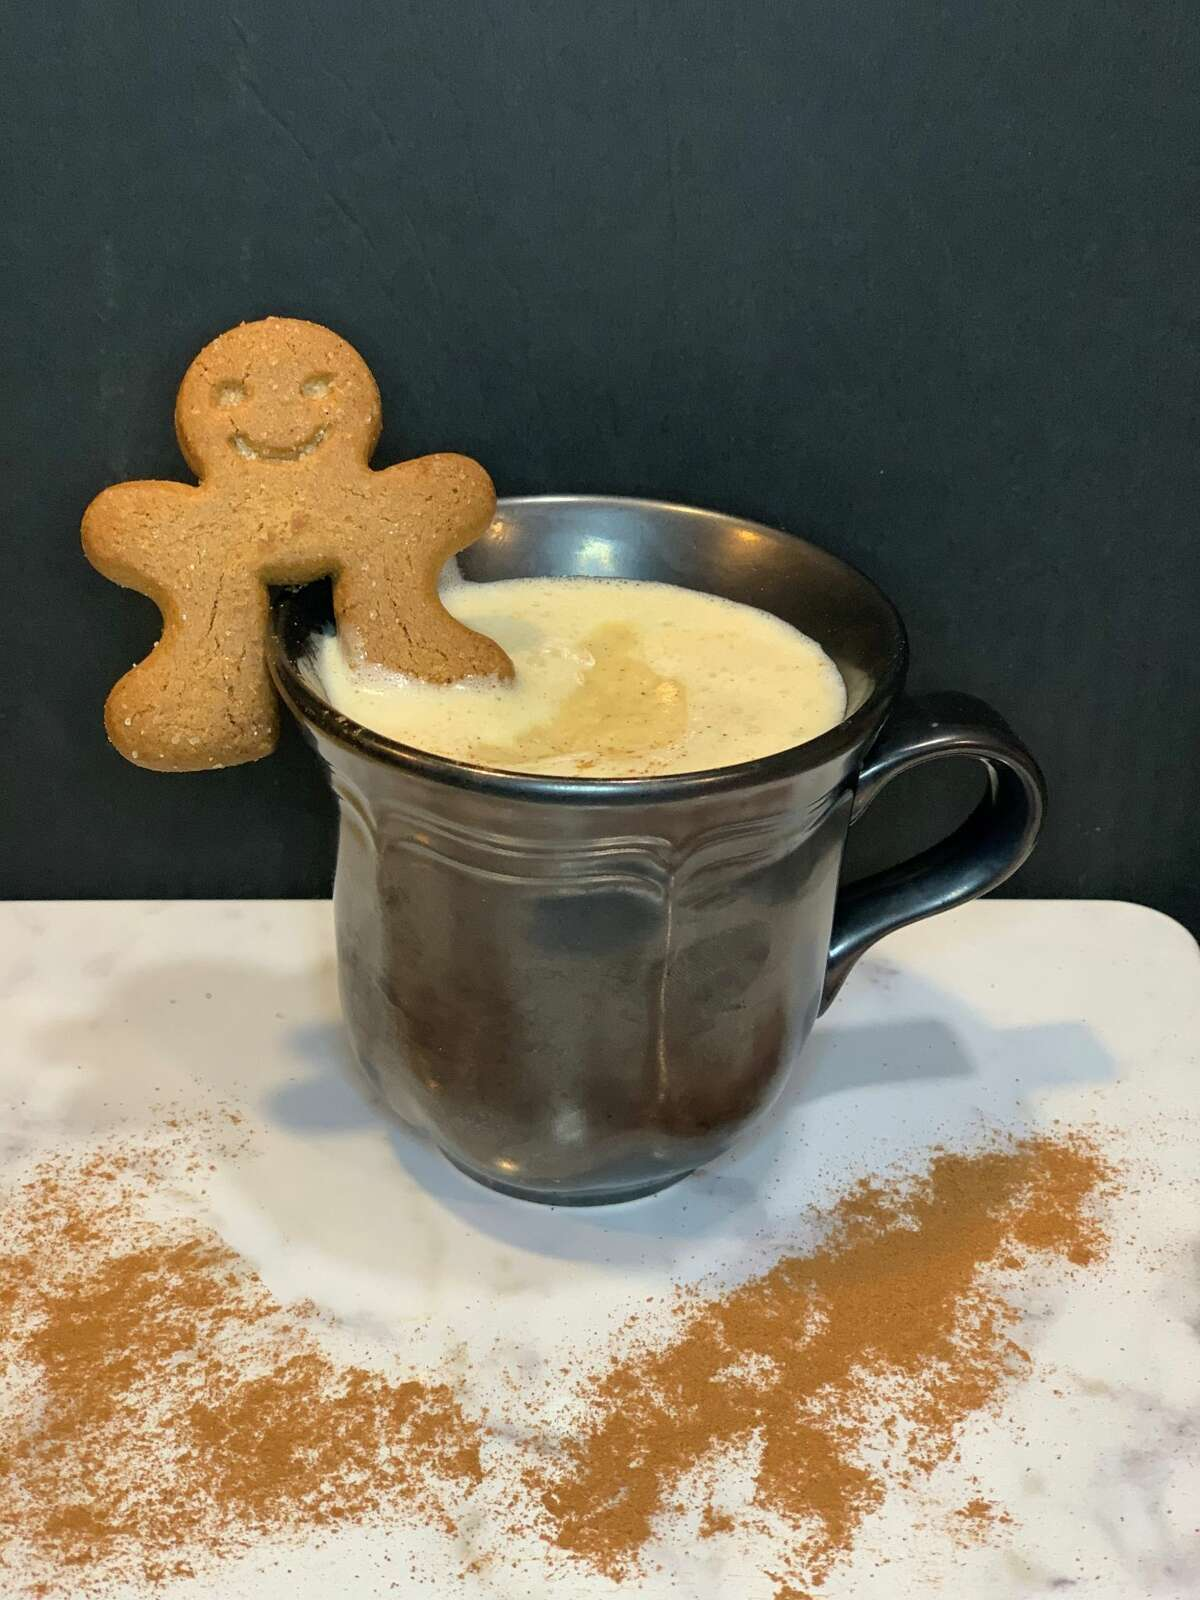 A Tom and Jerry cocktail, mixed with a gingerbread-esque batter.